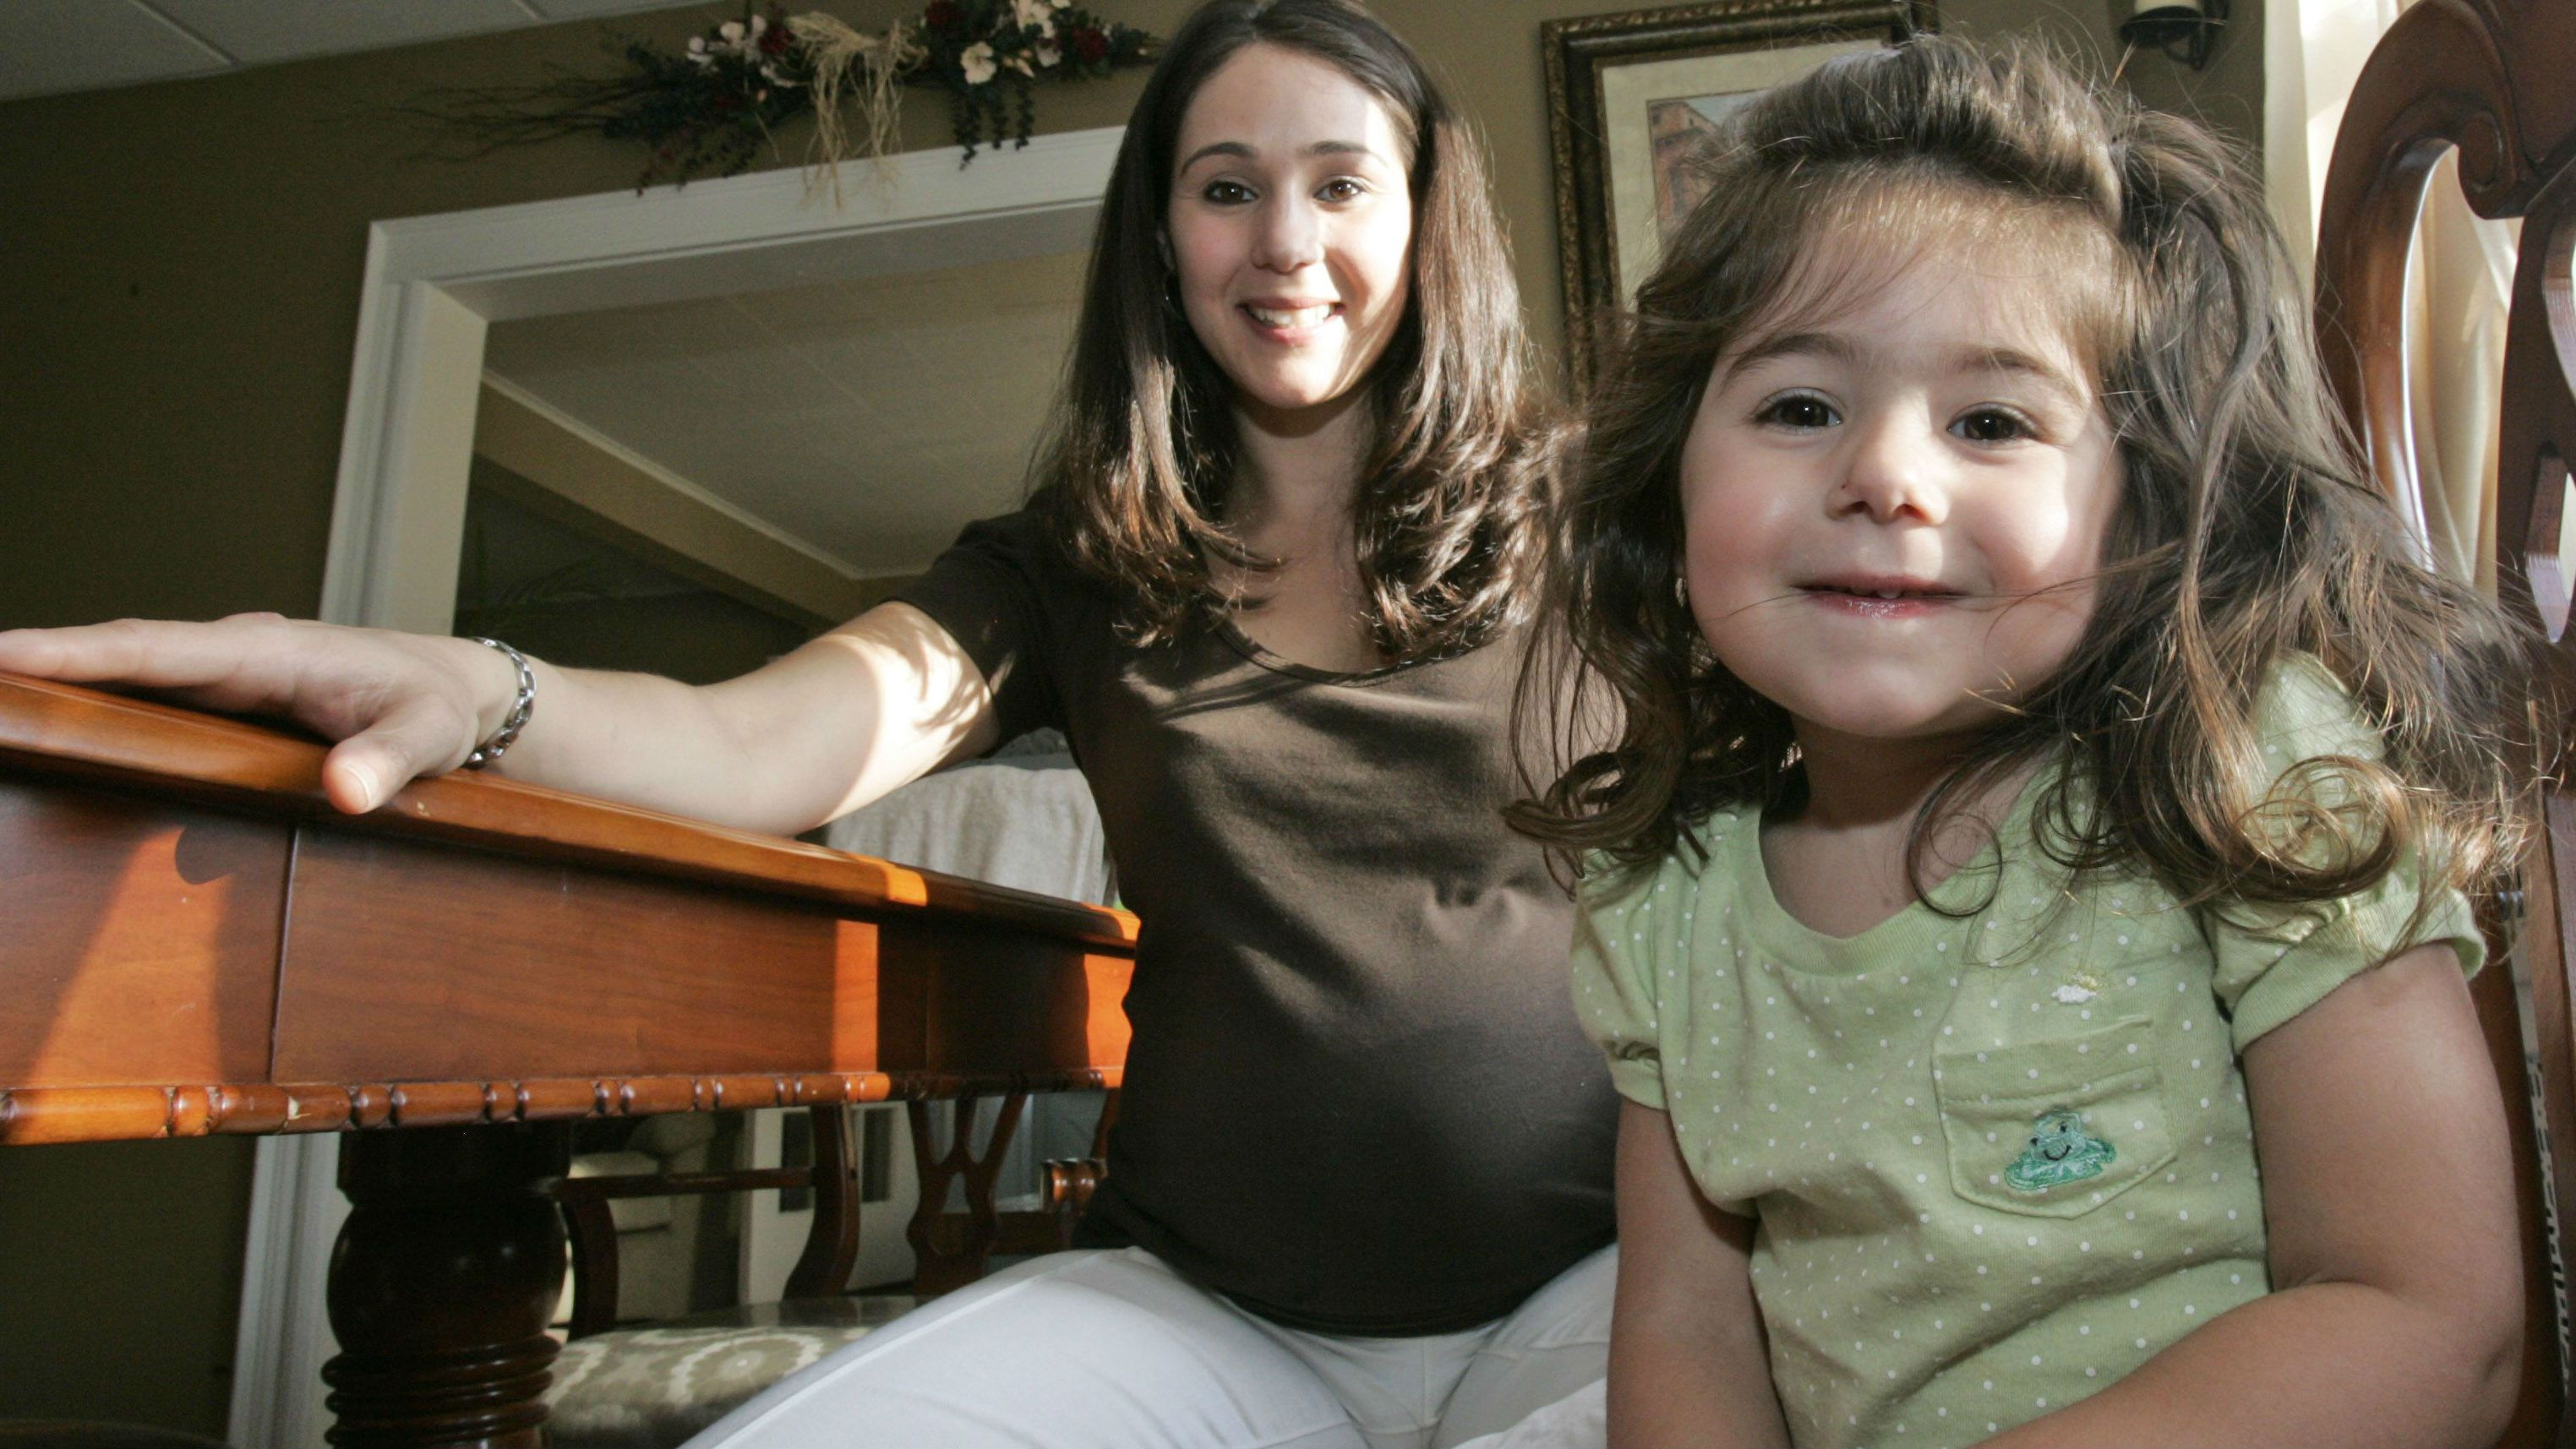 Michelle Cangemi, a Type 1 diabetic who is 7 months pregnant with her second child, poses for a portrait with her daughter Marissa, 3, Thursday, Jan. 24, 2008 in Lynbrook, N.Y. The number of pregnant women with pre-existing diabetes has more than doubled in seven years, a California study found, a troubling trend that means health risks for both mothers and newborns. (AP Photo/Frank Franklin II)